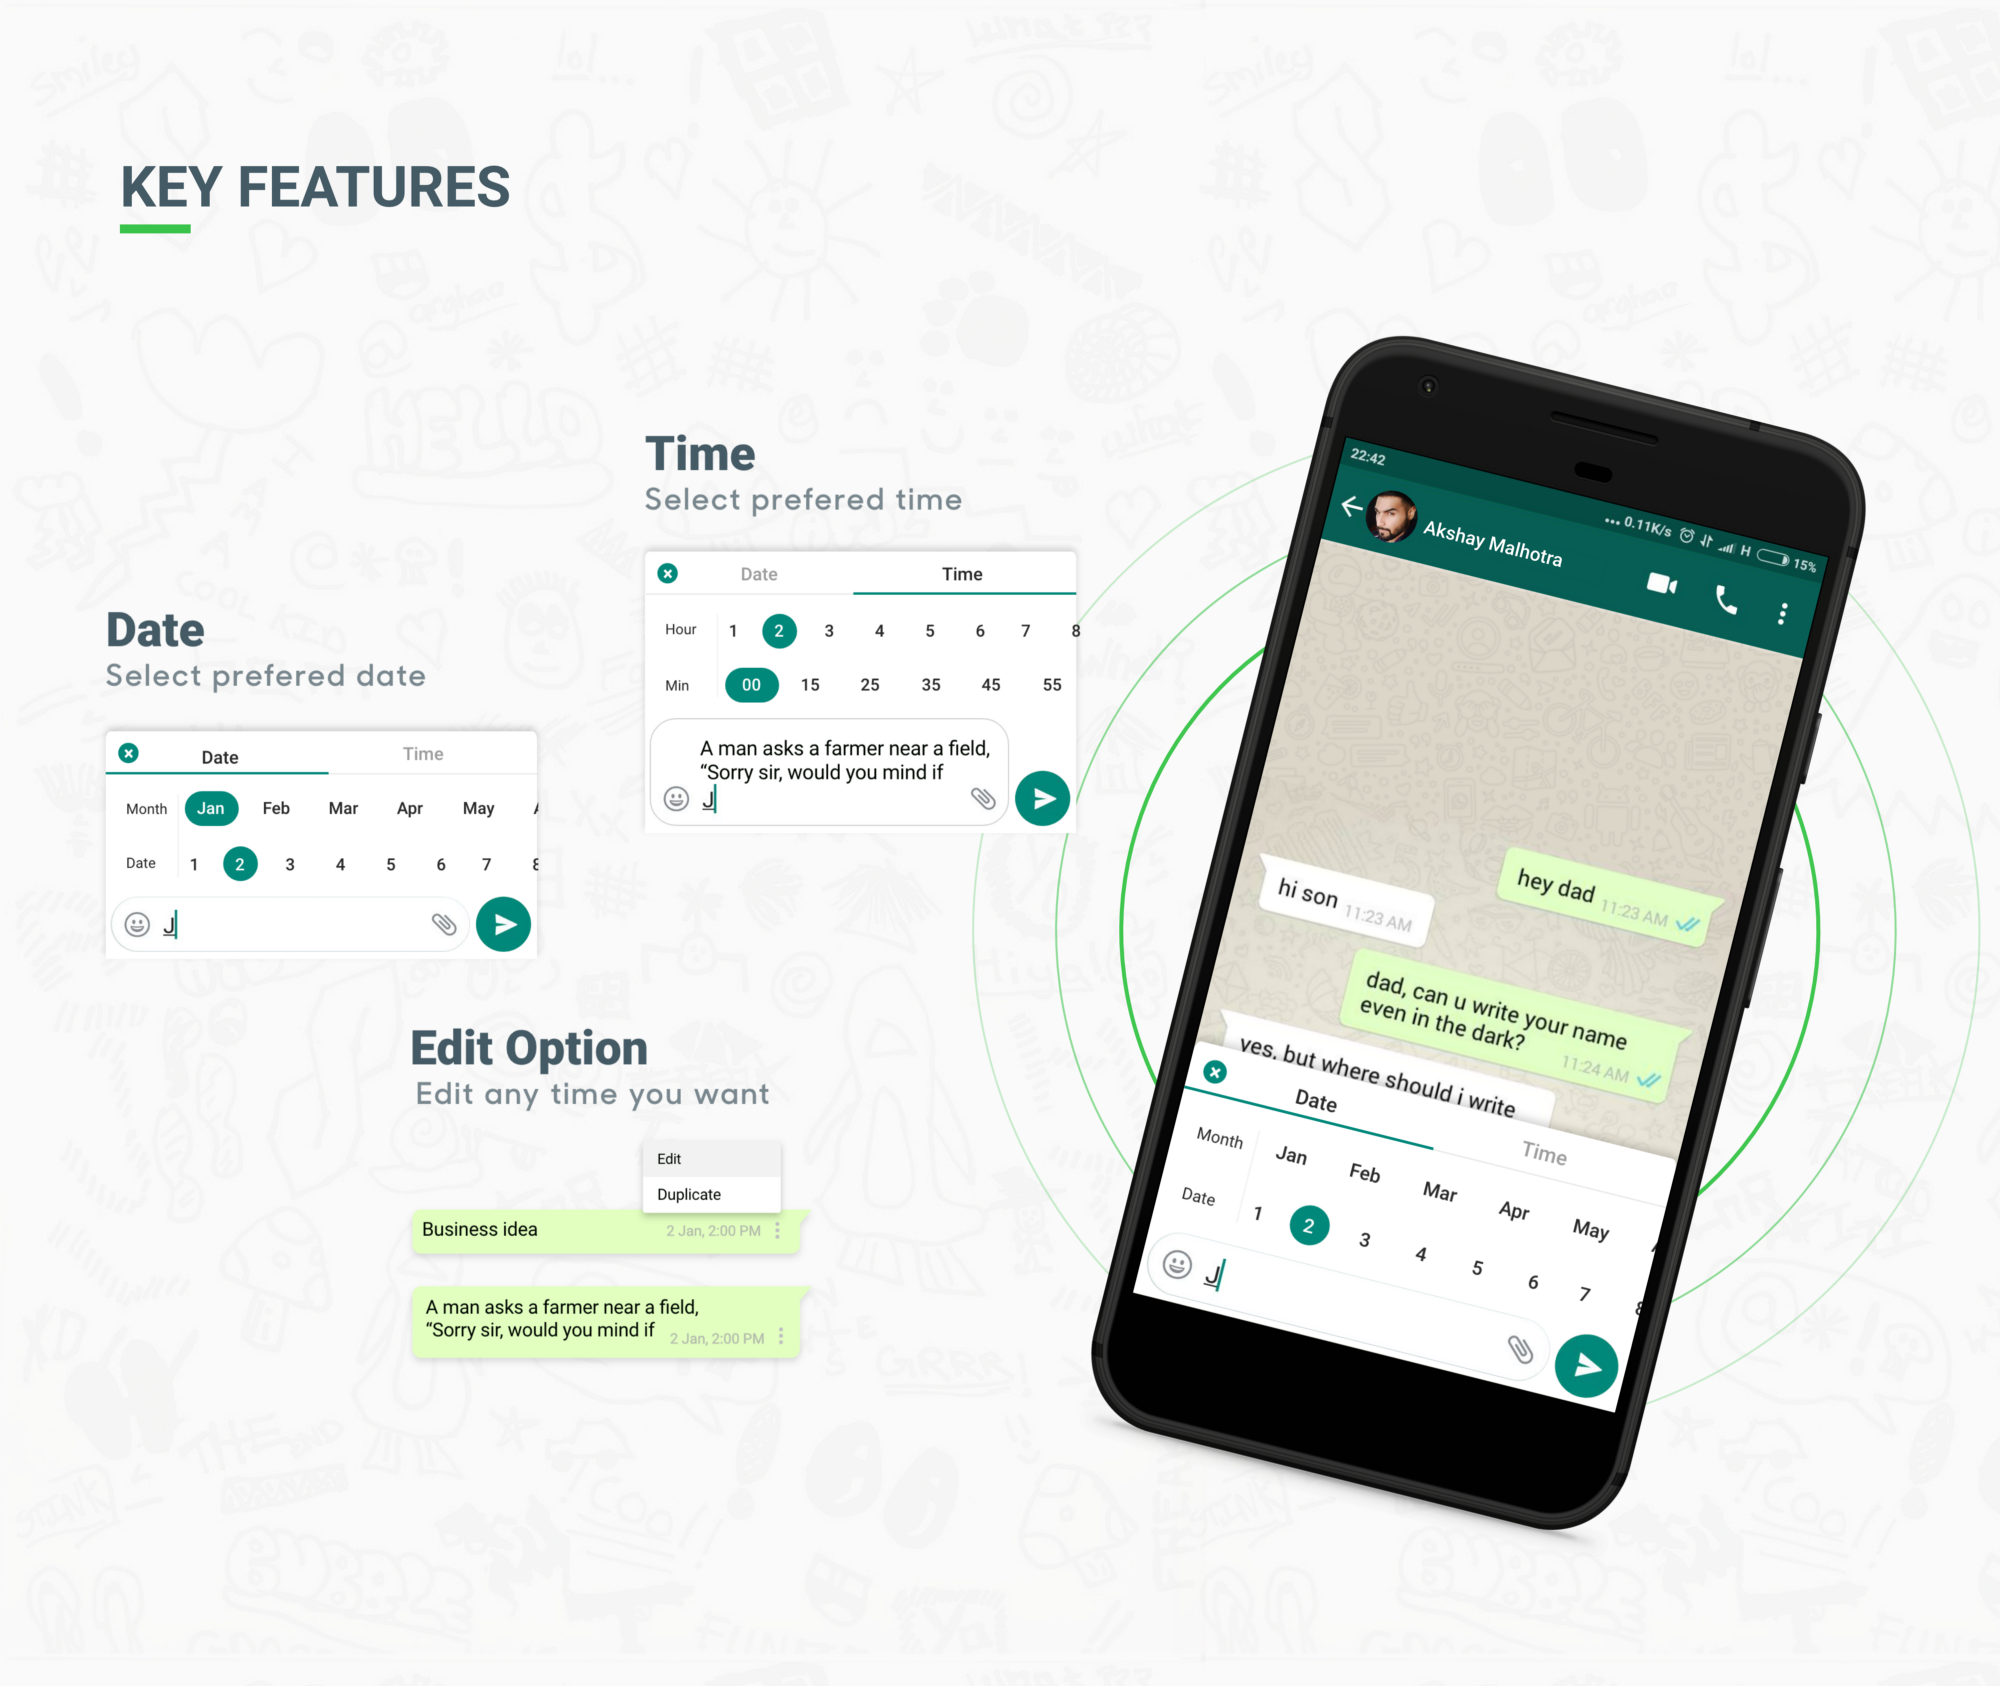 key features of whatsapp business message scheduler concept